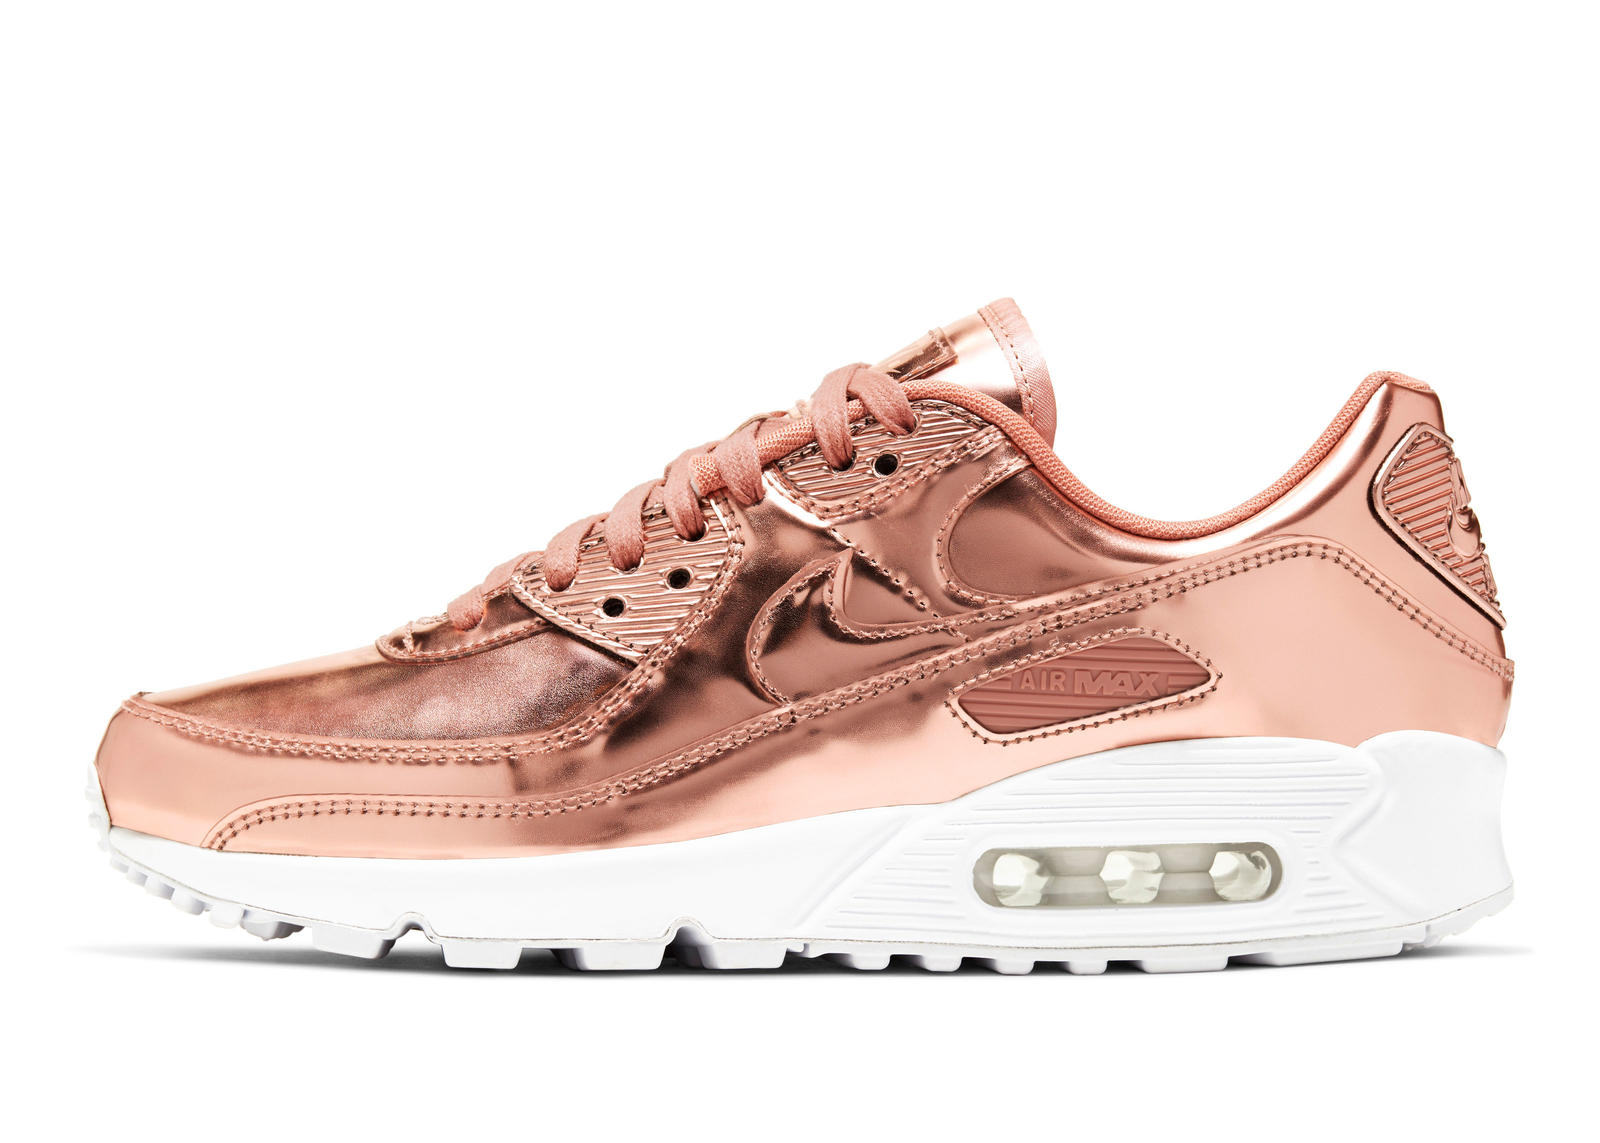 air max day 2020, goud metallic